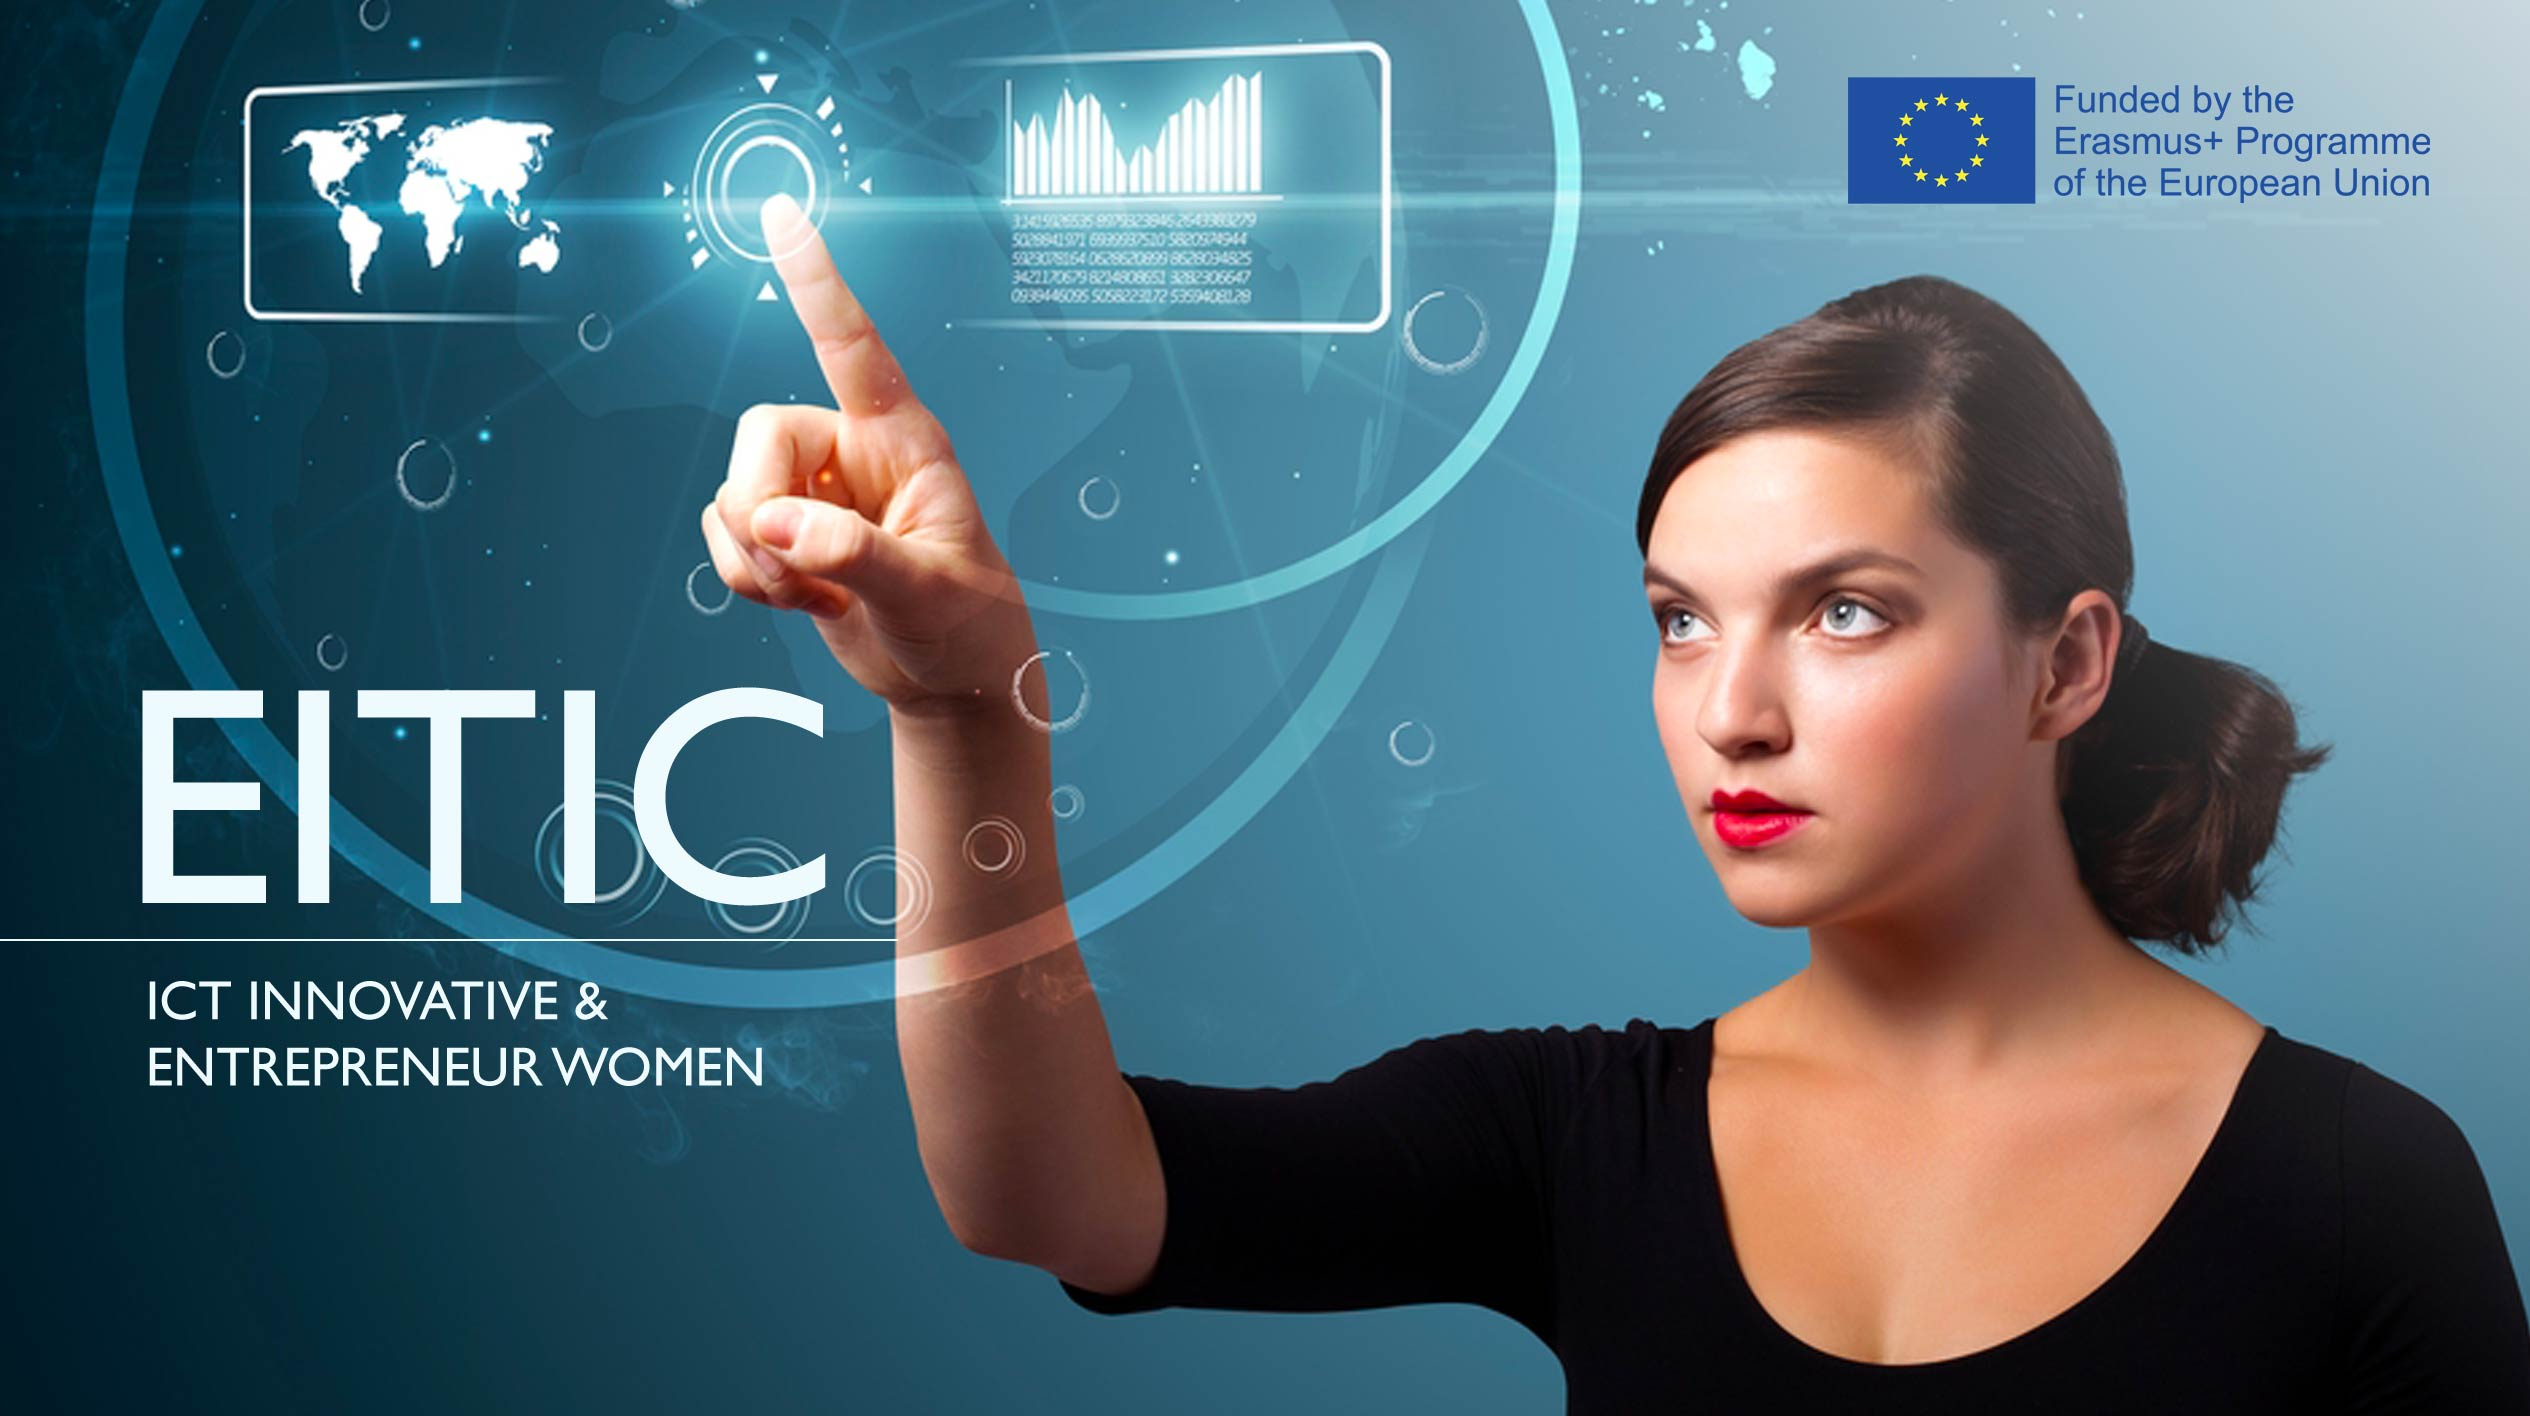 KO Meeting for EITIC Project: ICT Innovative Entrepreneur Women